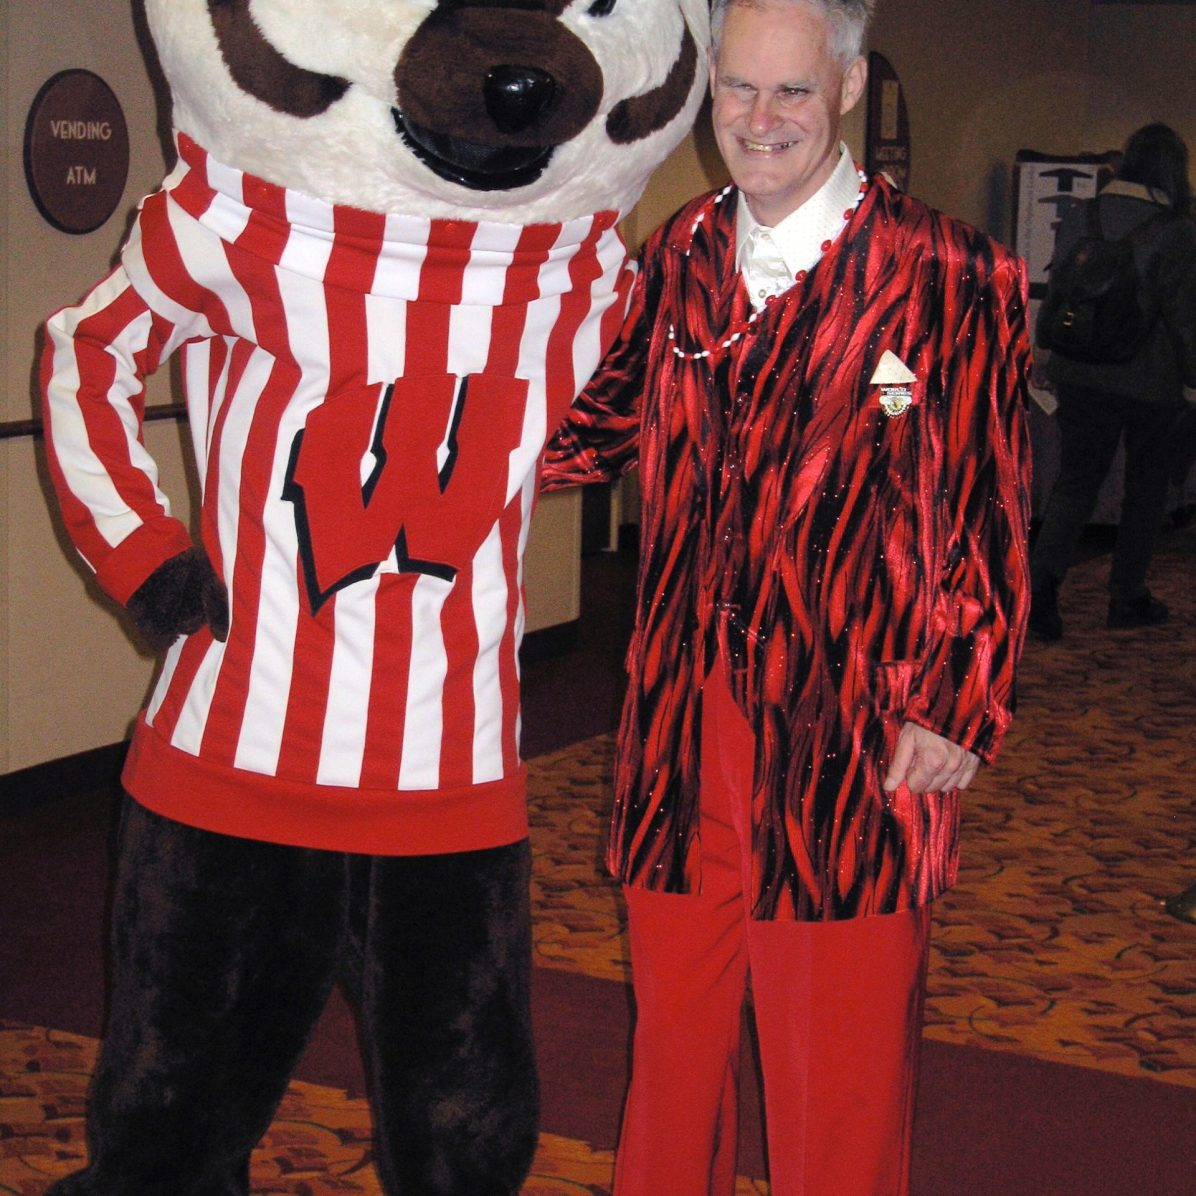 Vince the Illini meets Bucky Badger.